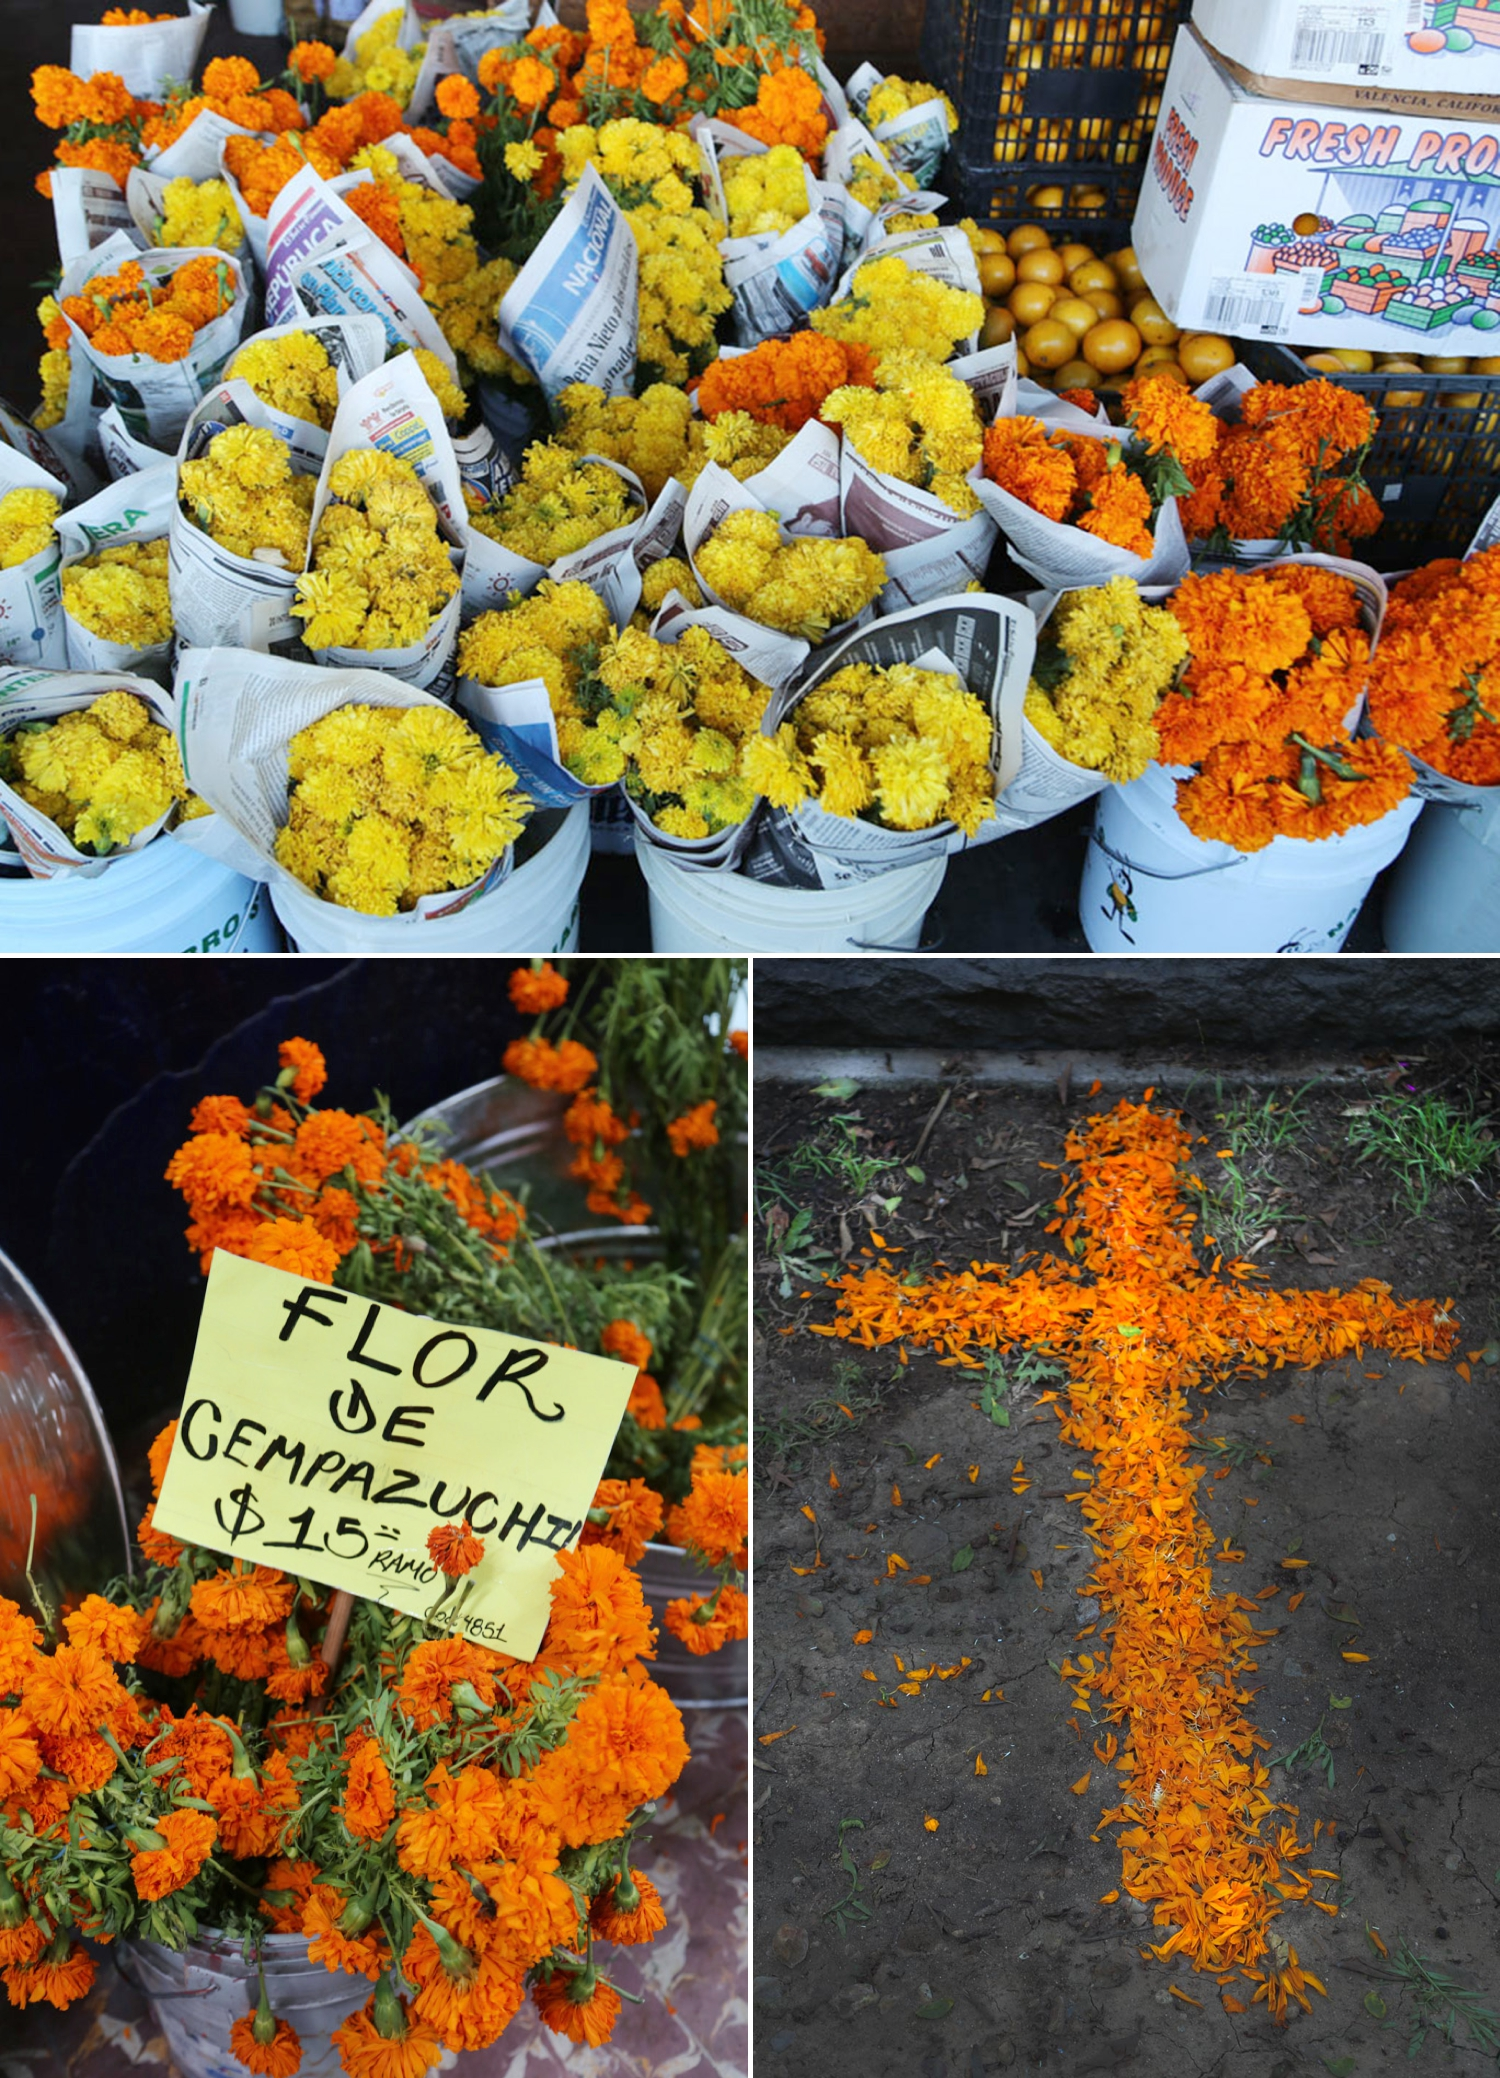 marigolds dia de los muertos fall halloween mexico travell blogger